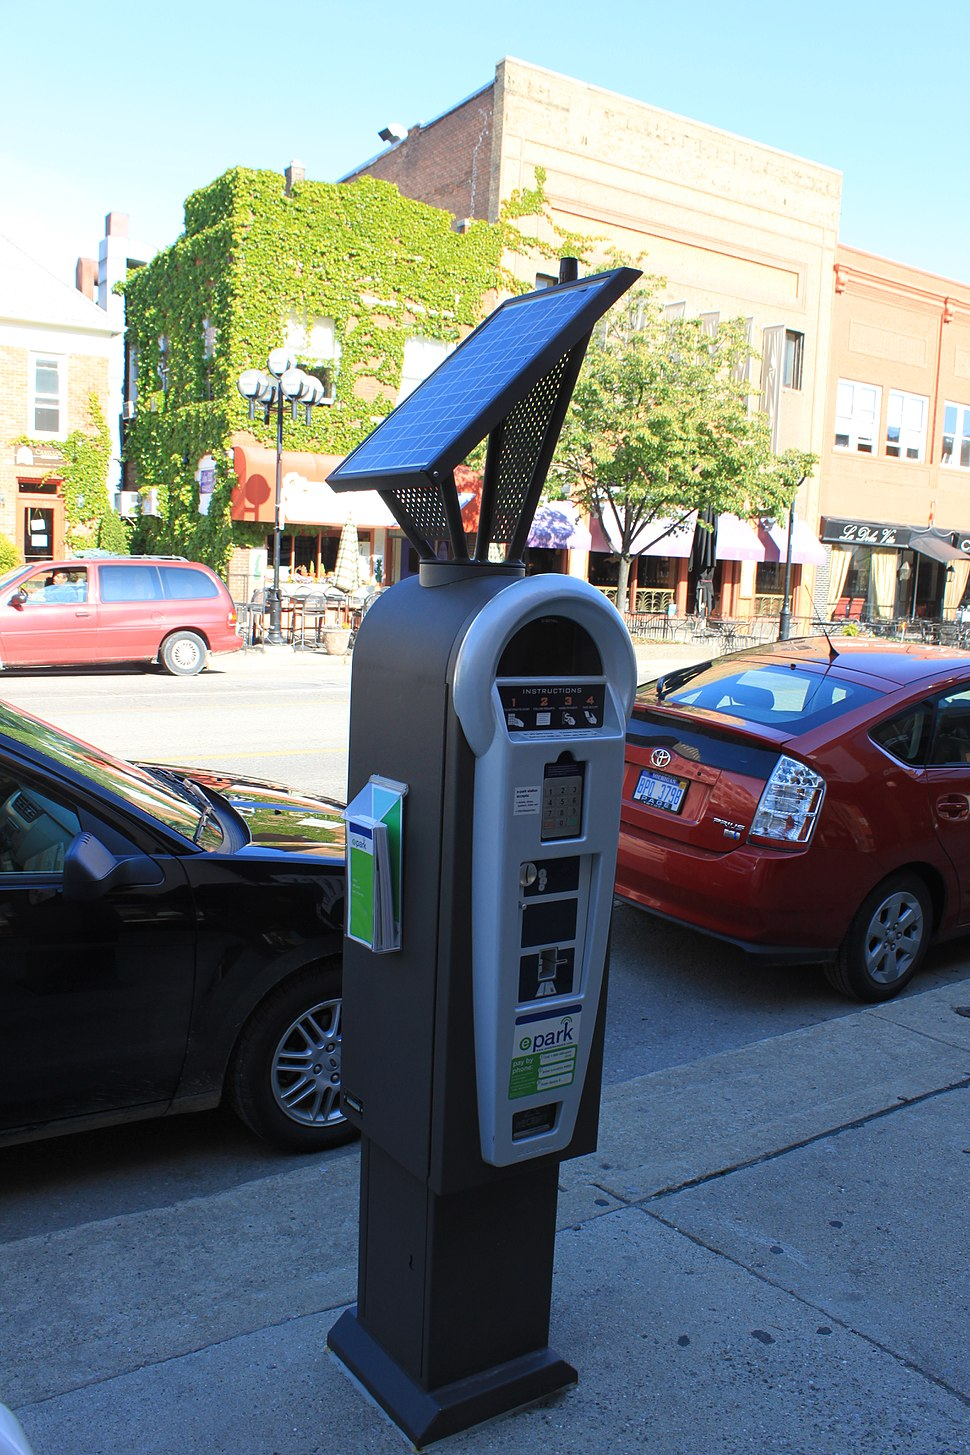 Multi-space parking meter